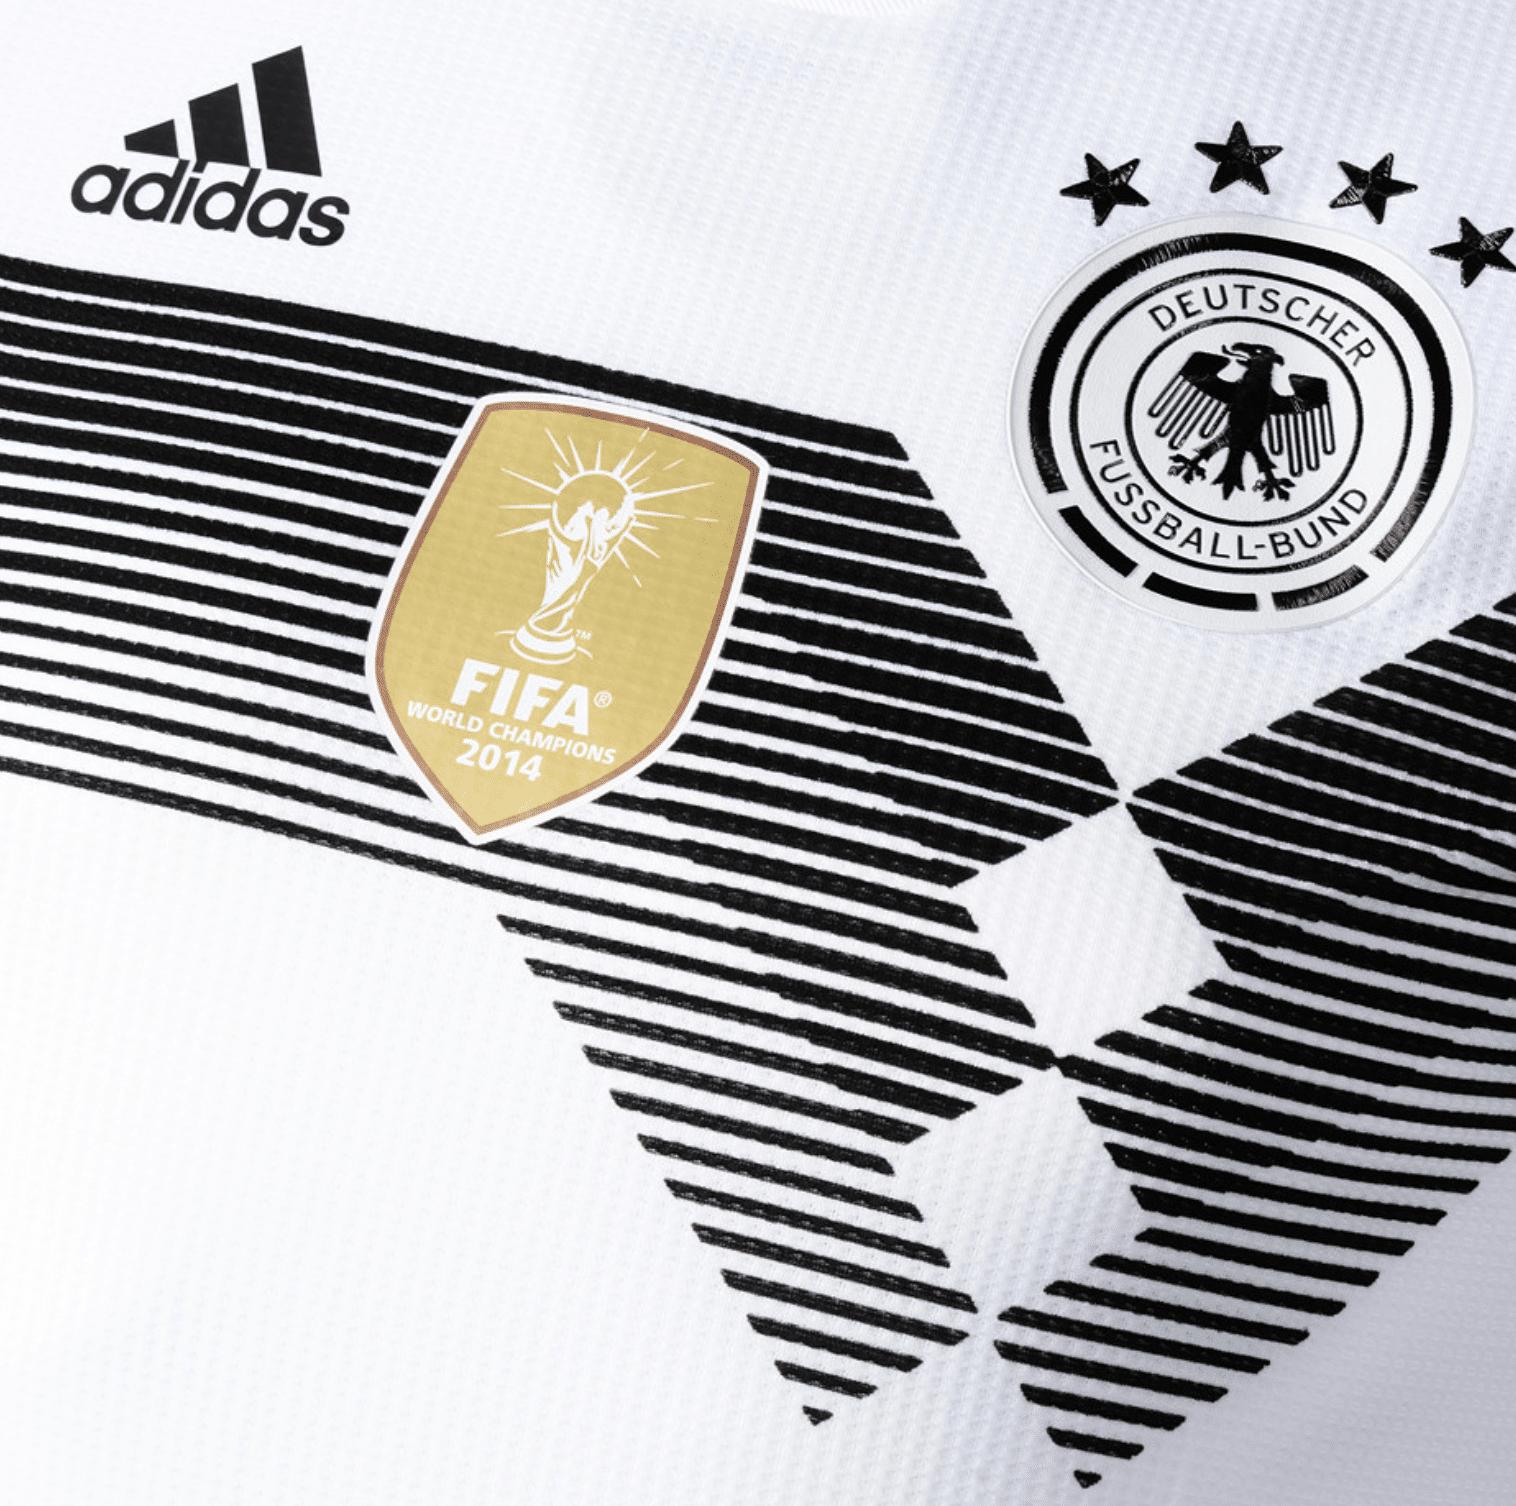 Jonas Hector signiert Deutschland Trikot Authentic Version DFB XL